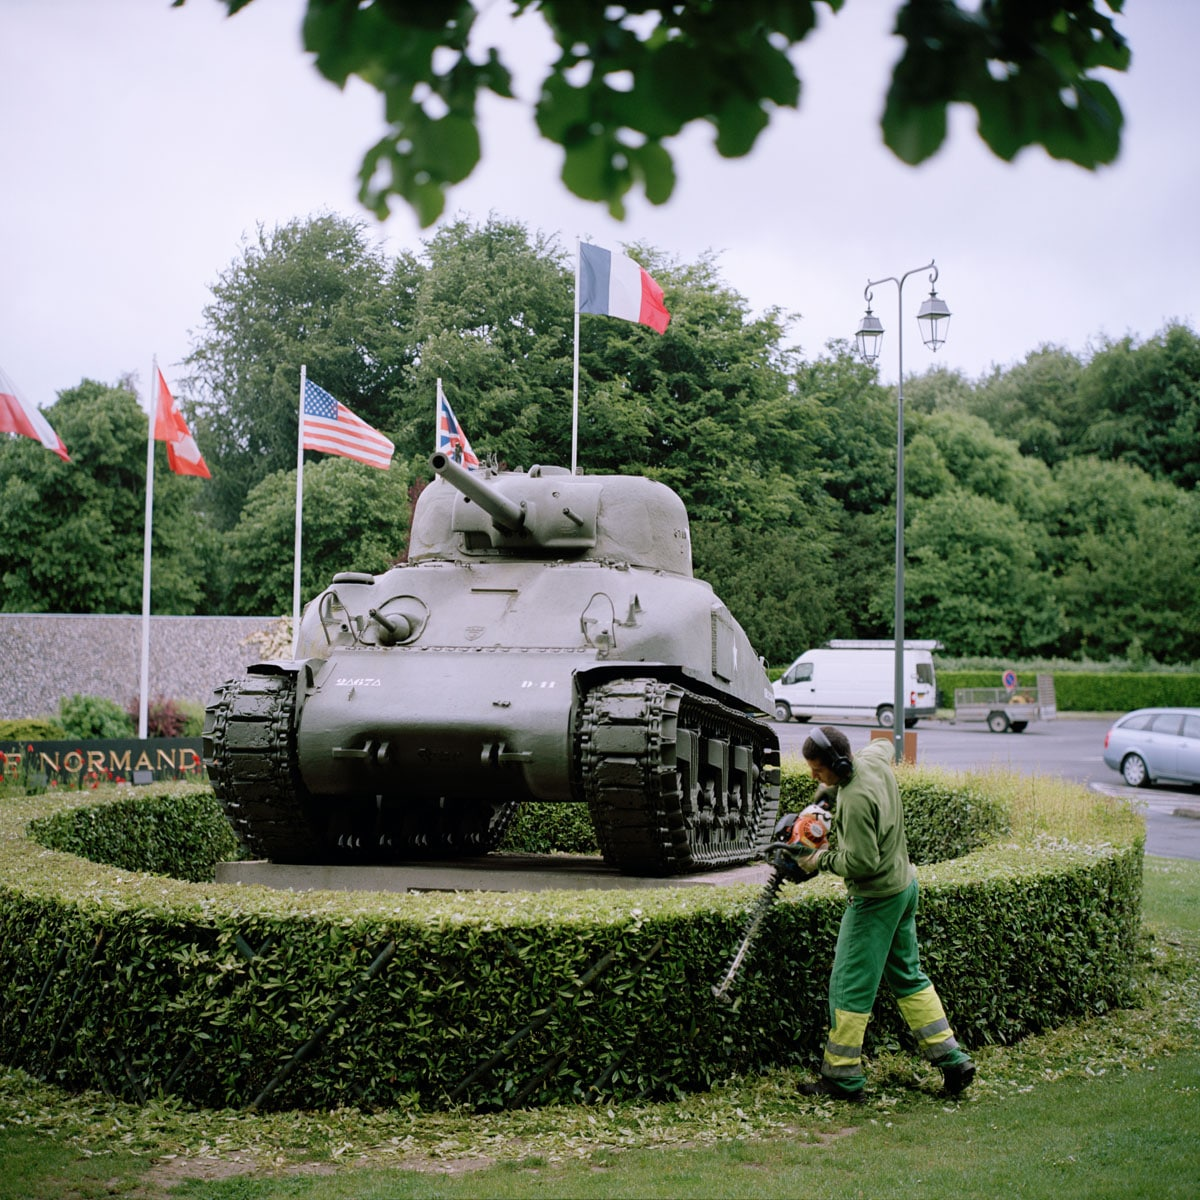 Frankrijk, Bayeux, 04-06-2012 Musée-Mémorial de la Bataille de Normandie. A Gardener in front of a Sherman Tank in front of the museum PHOTO AND COPYRIGHT ROGER CREMERS